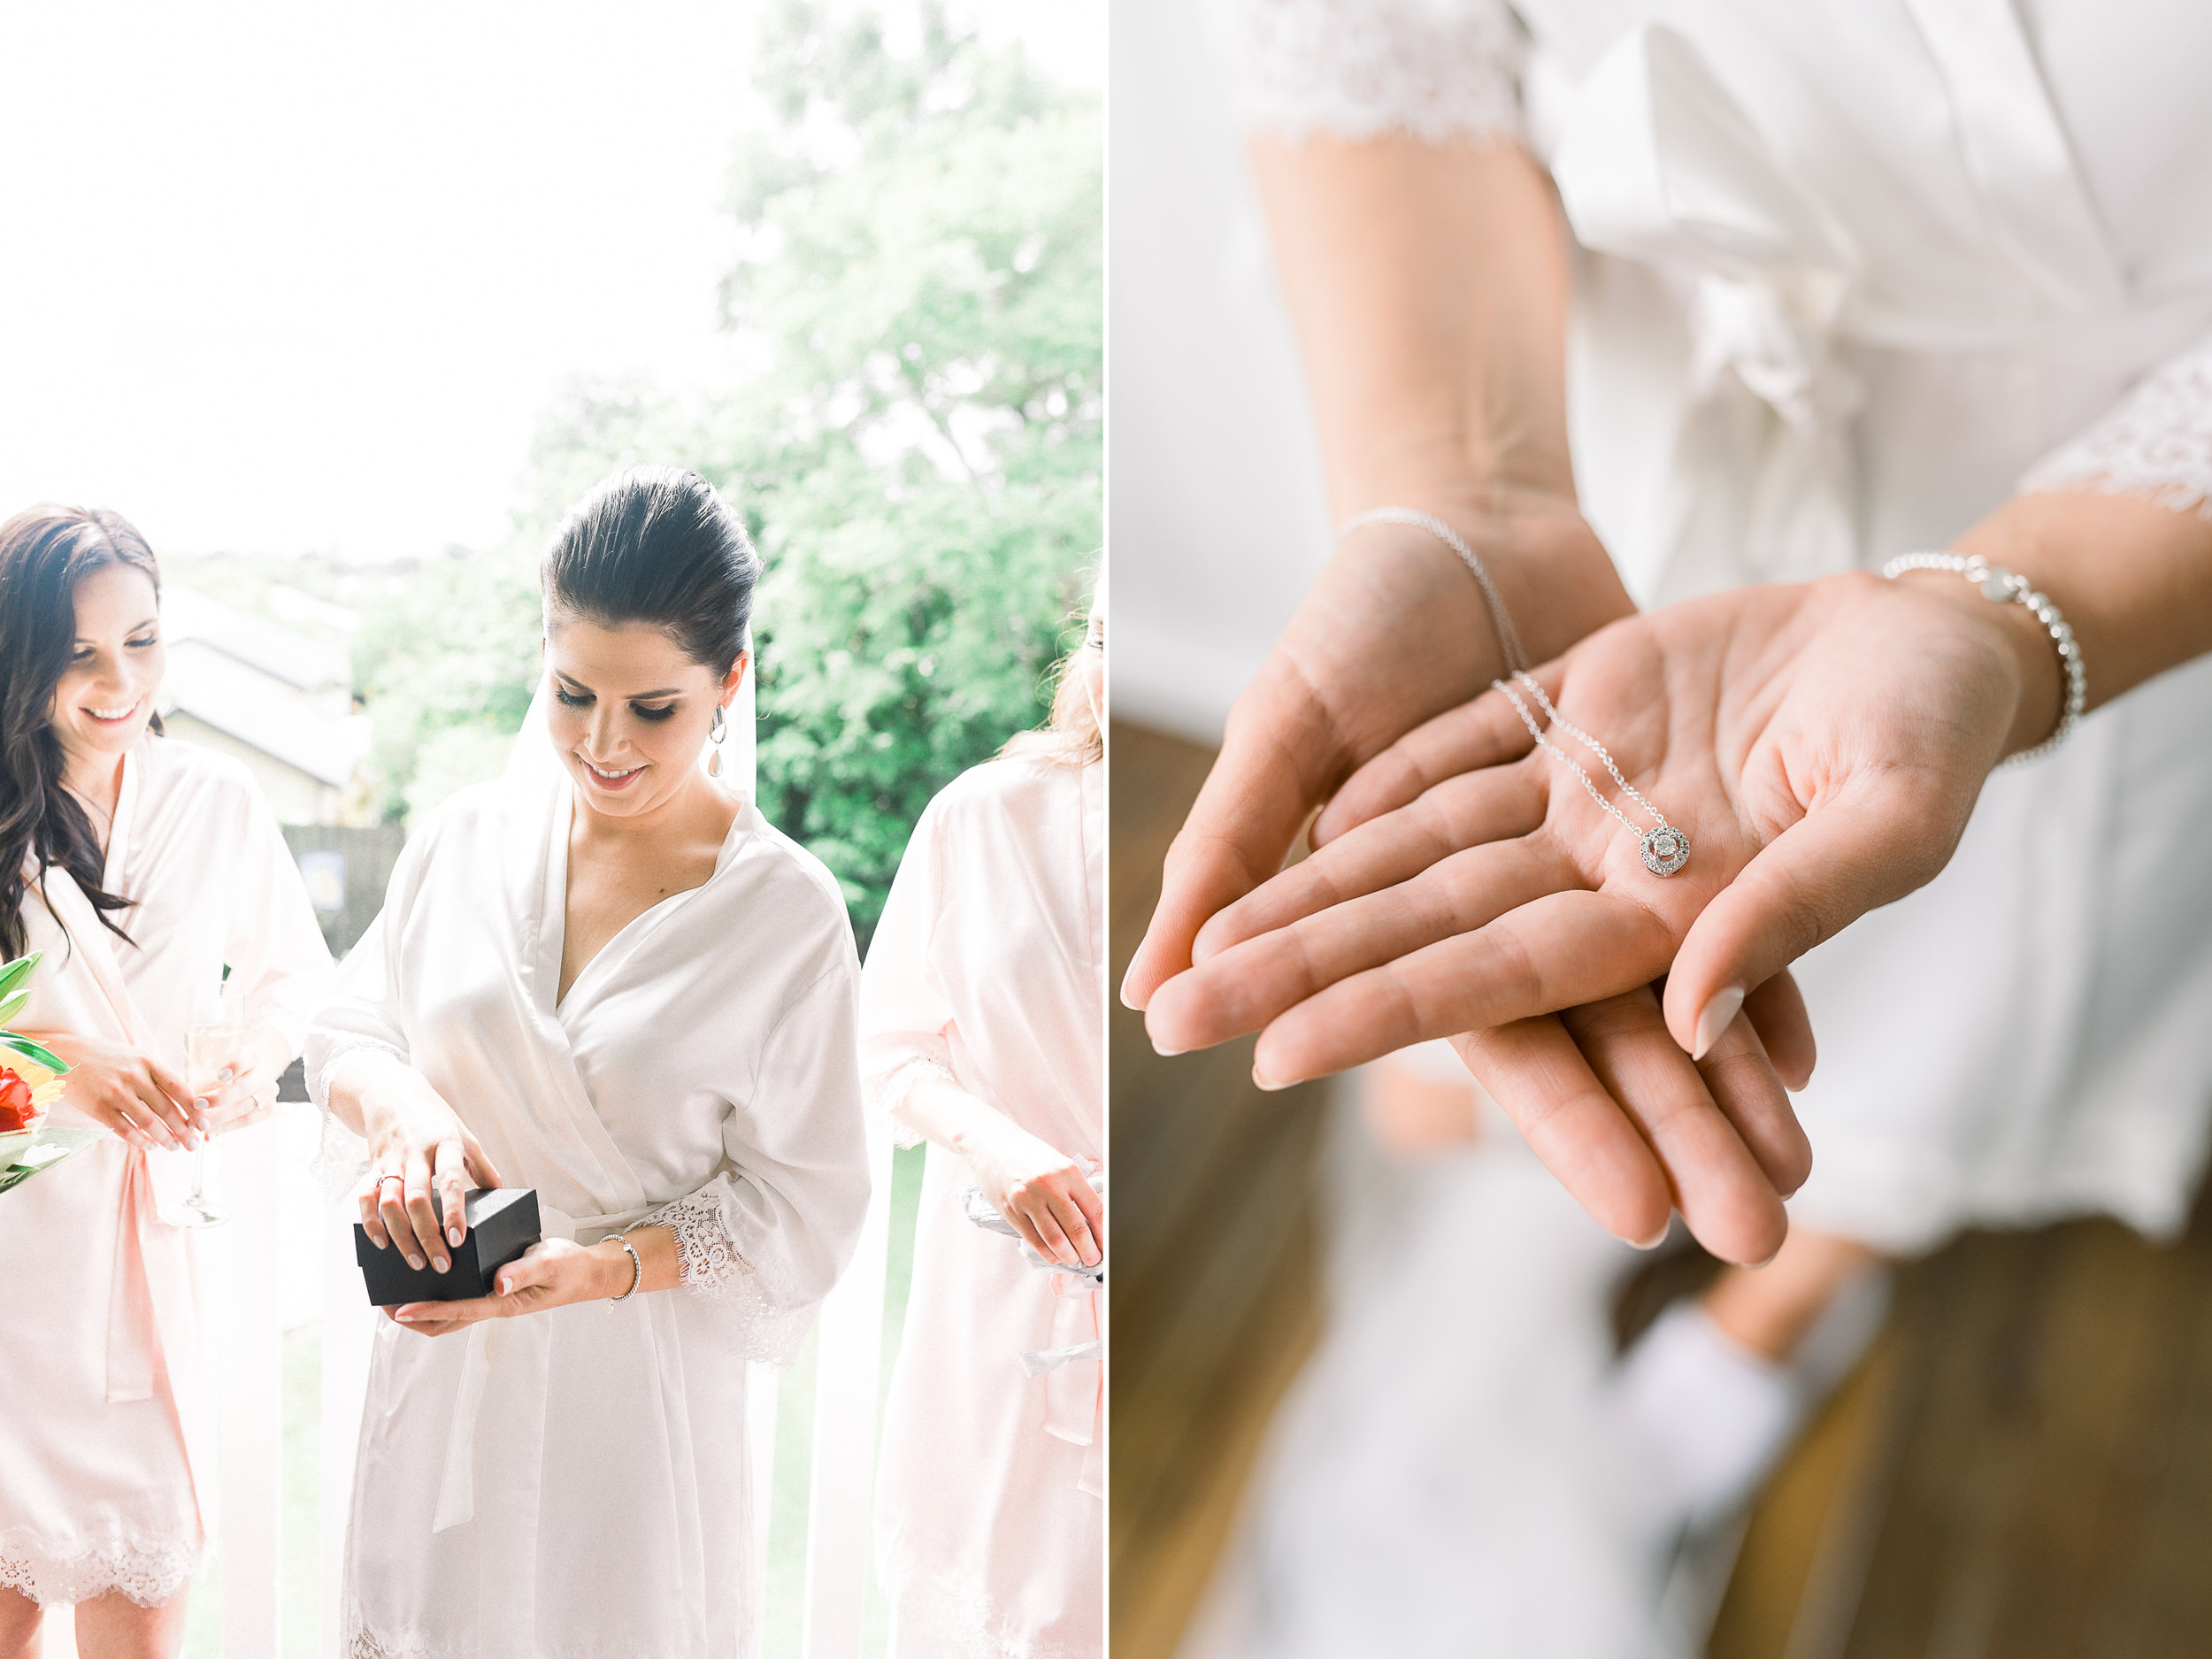 brisane-city-wedding-photography-bridal-prep-details-6.jpg